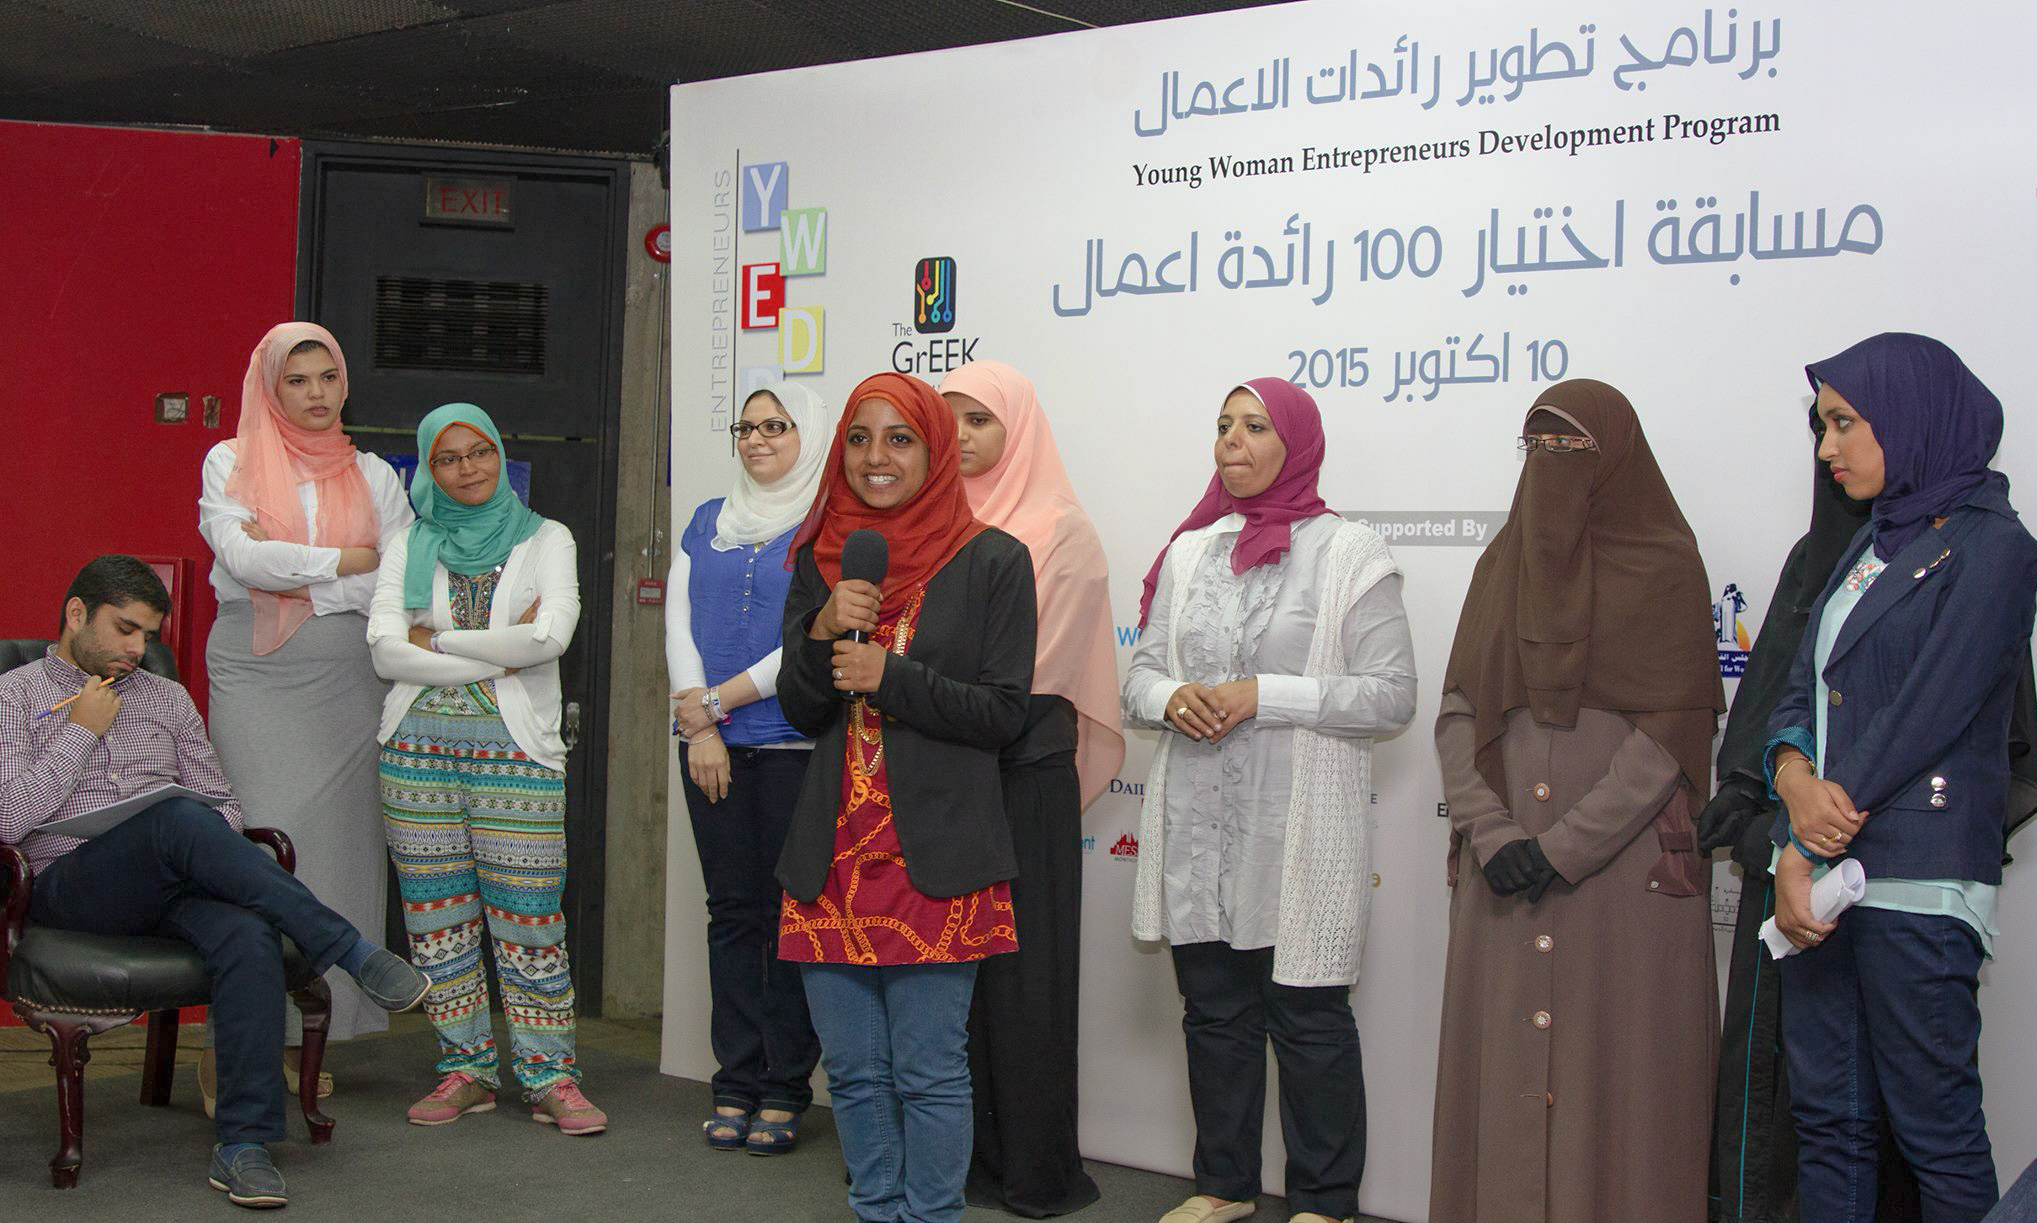 Young women entrepreneurs from Upper Egypt and rural areas pitching their business ideas at the Greek Campus, October 11, 2015.